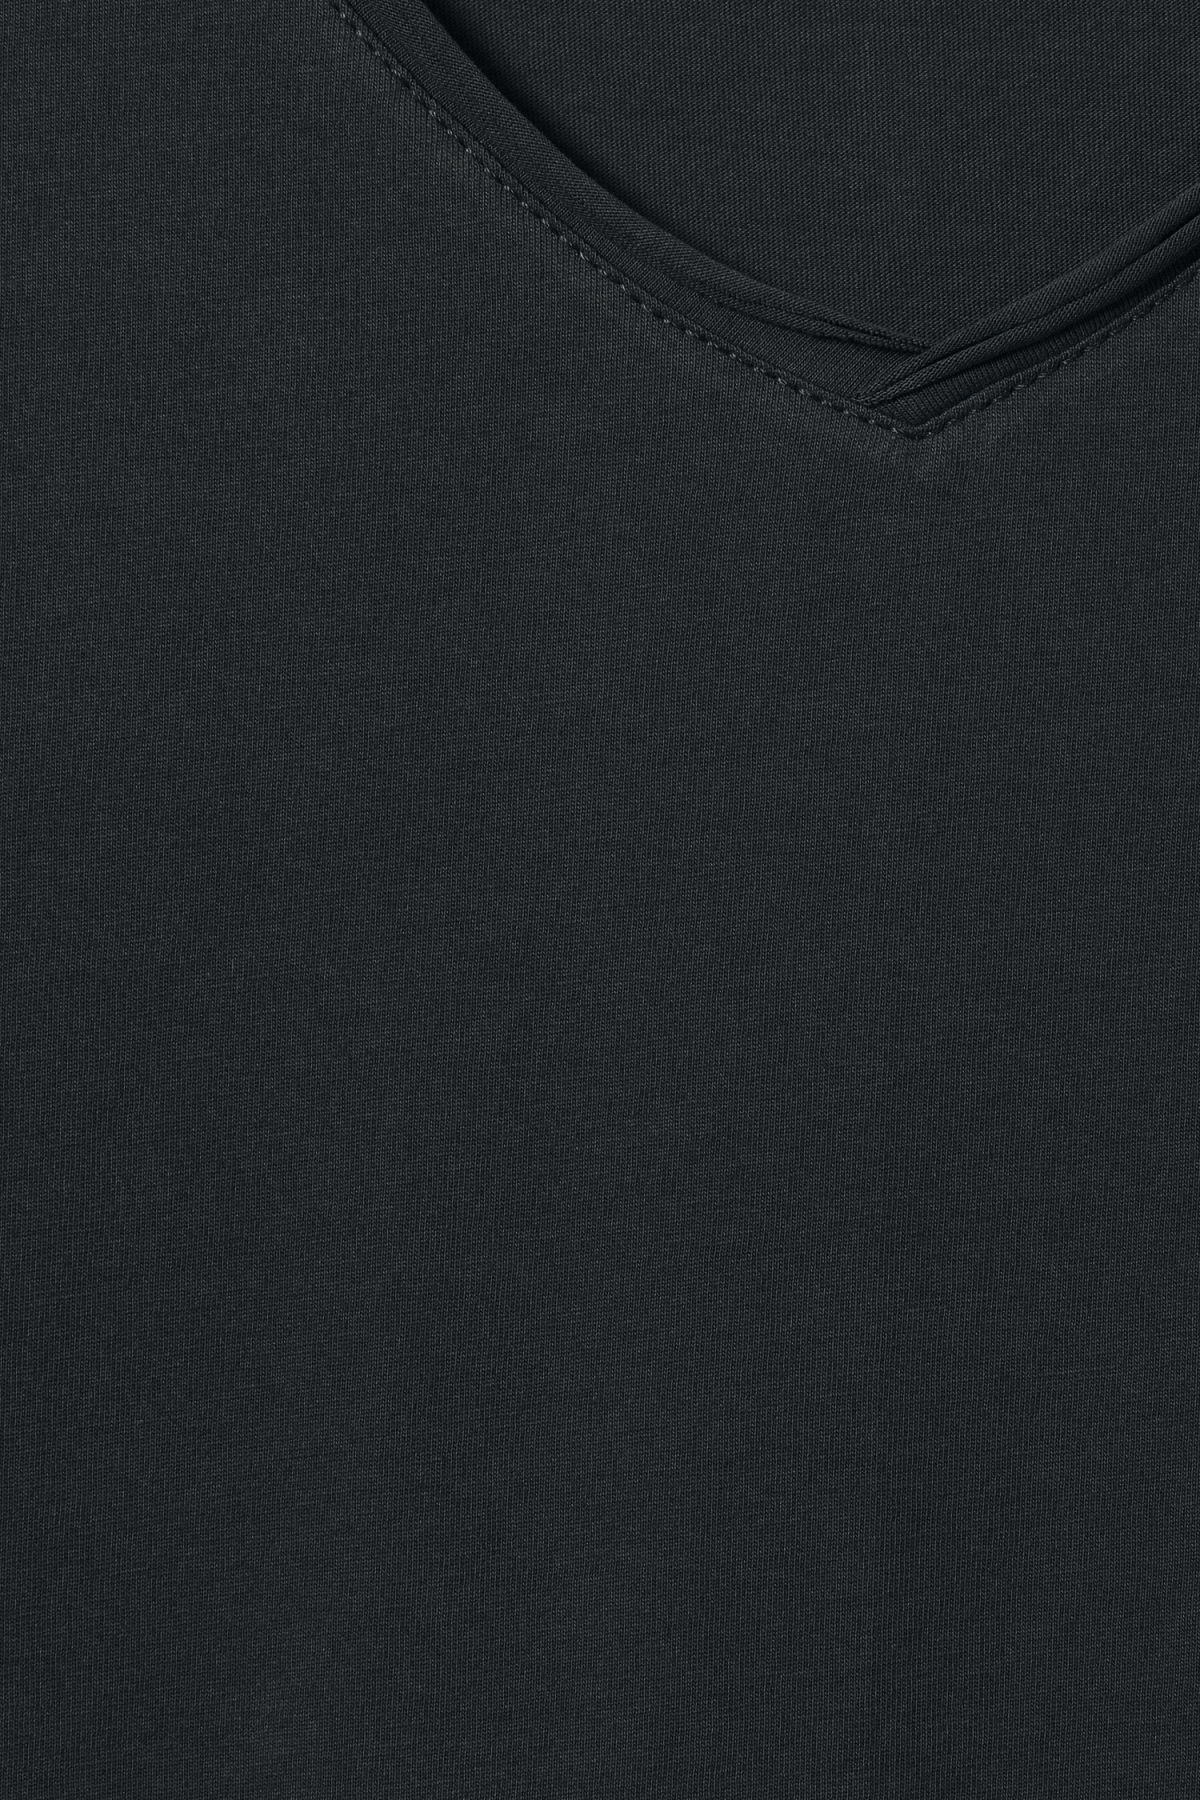 Detailed image of Weekday dark v-neck t-shirt in black